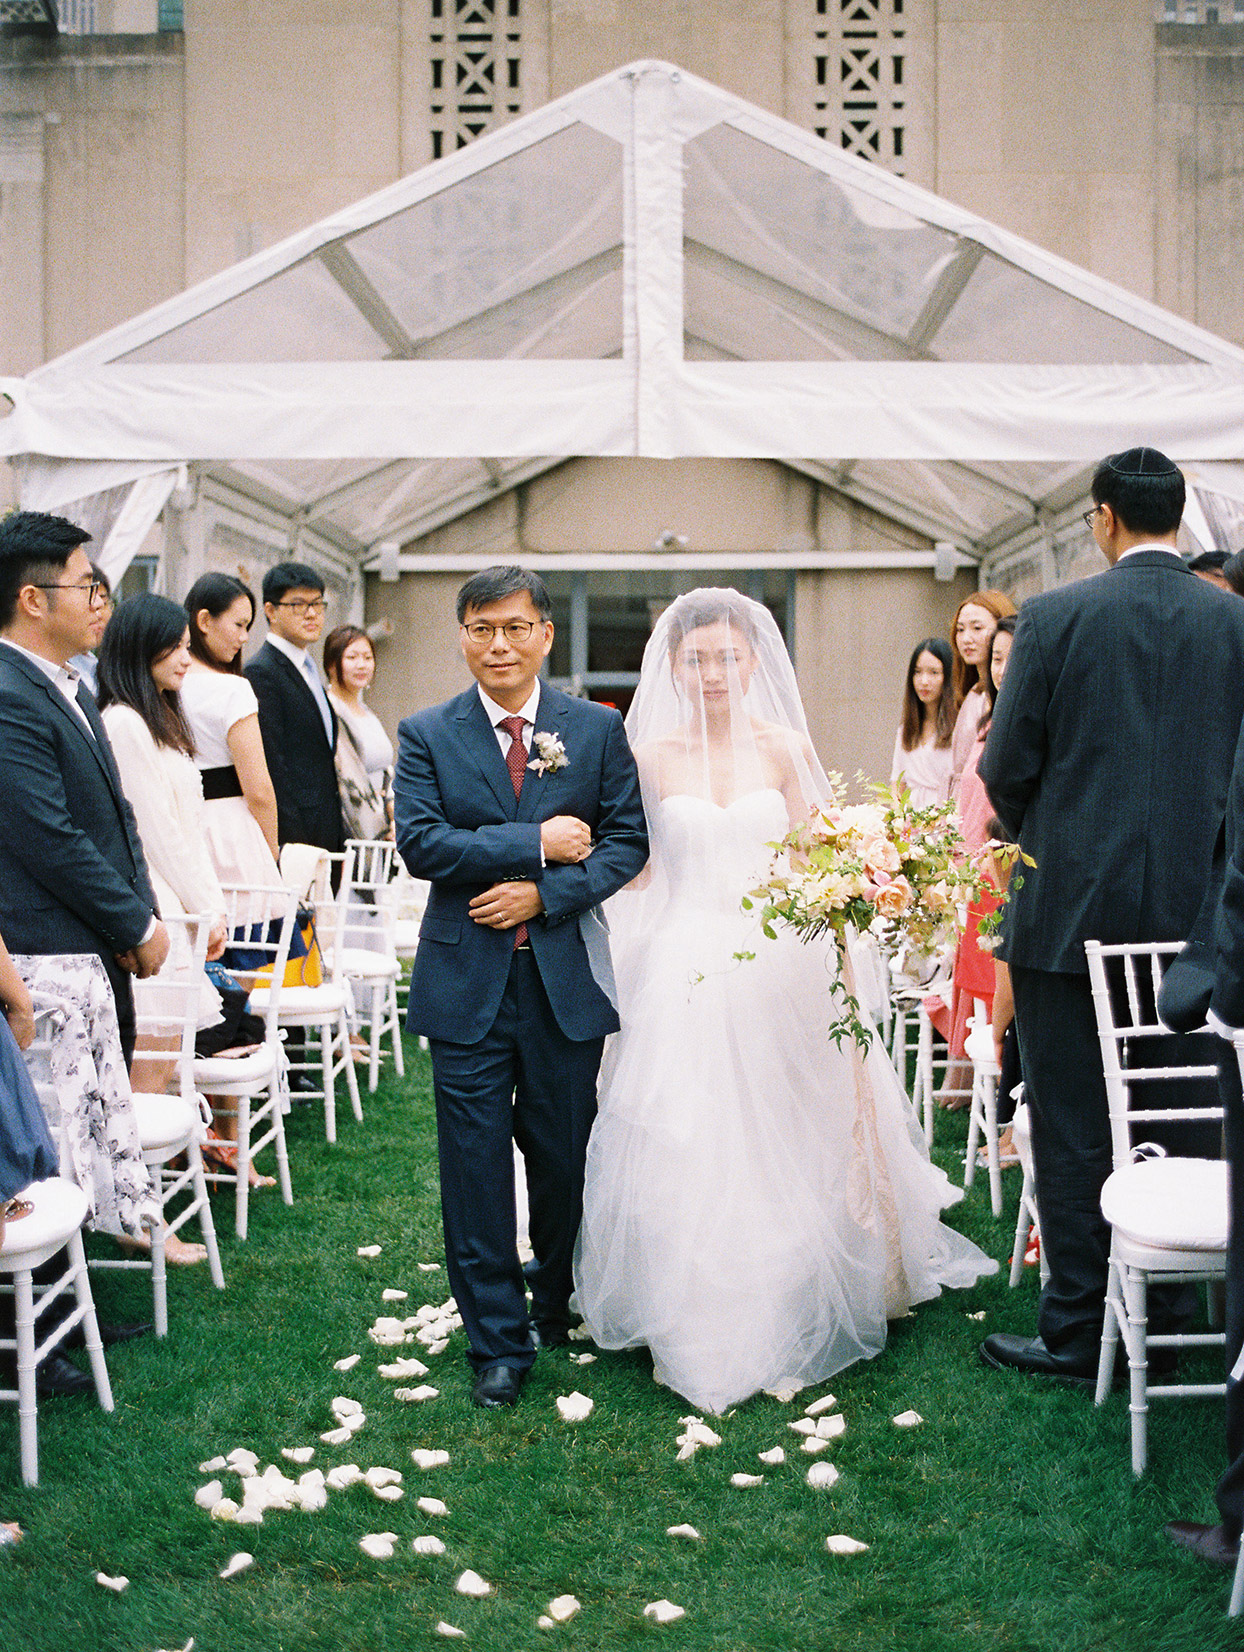 bride and father processing down aisle at wedding